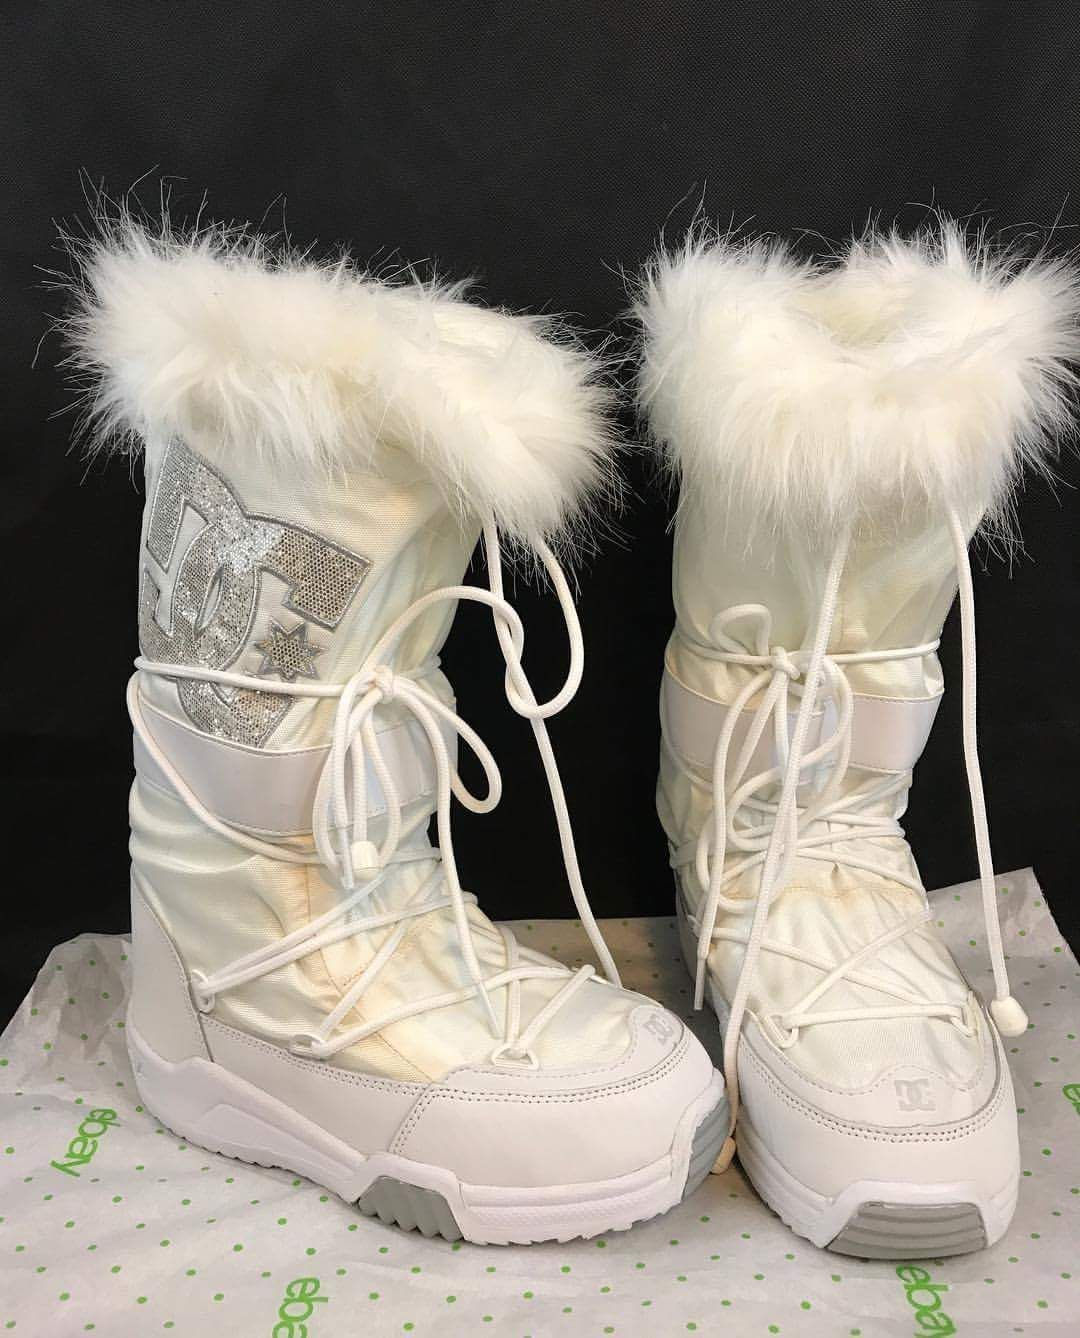 de27b55d296 57 Winter Boots for a Warm and Cozy Style in the Chilling Season ...